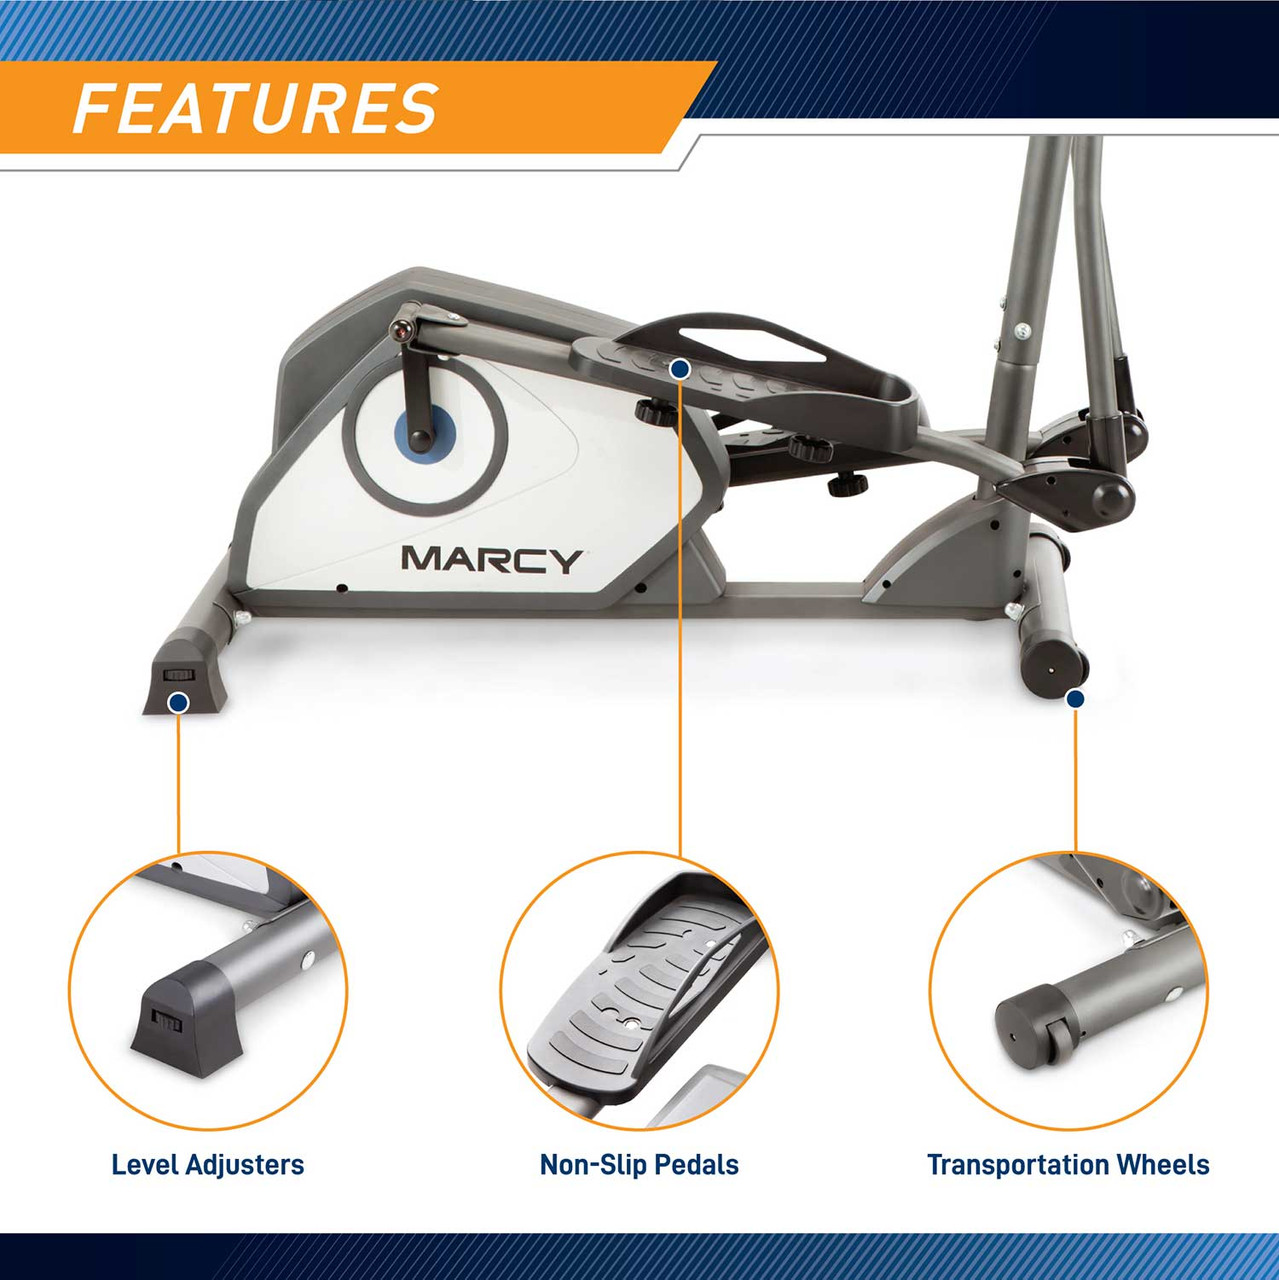 The Marcy NS-40501W Elliptical Trainer has large pedals with grip for increased safety